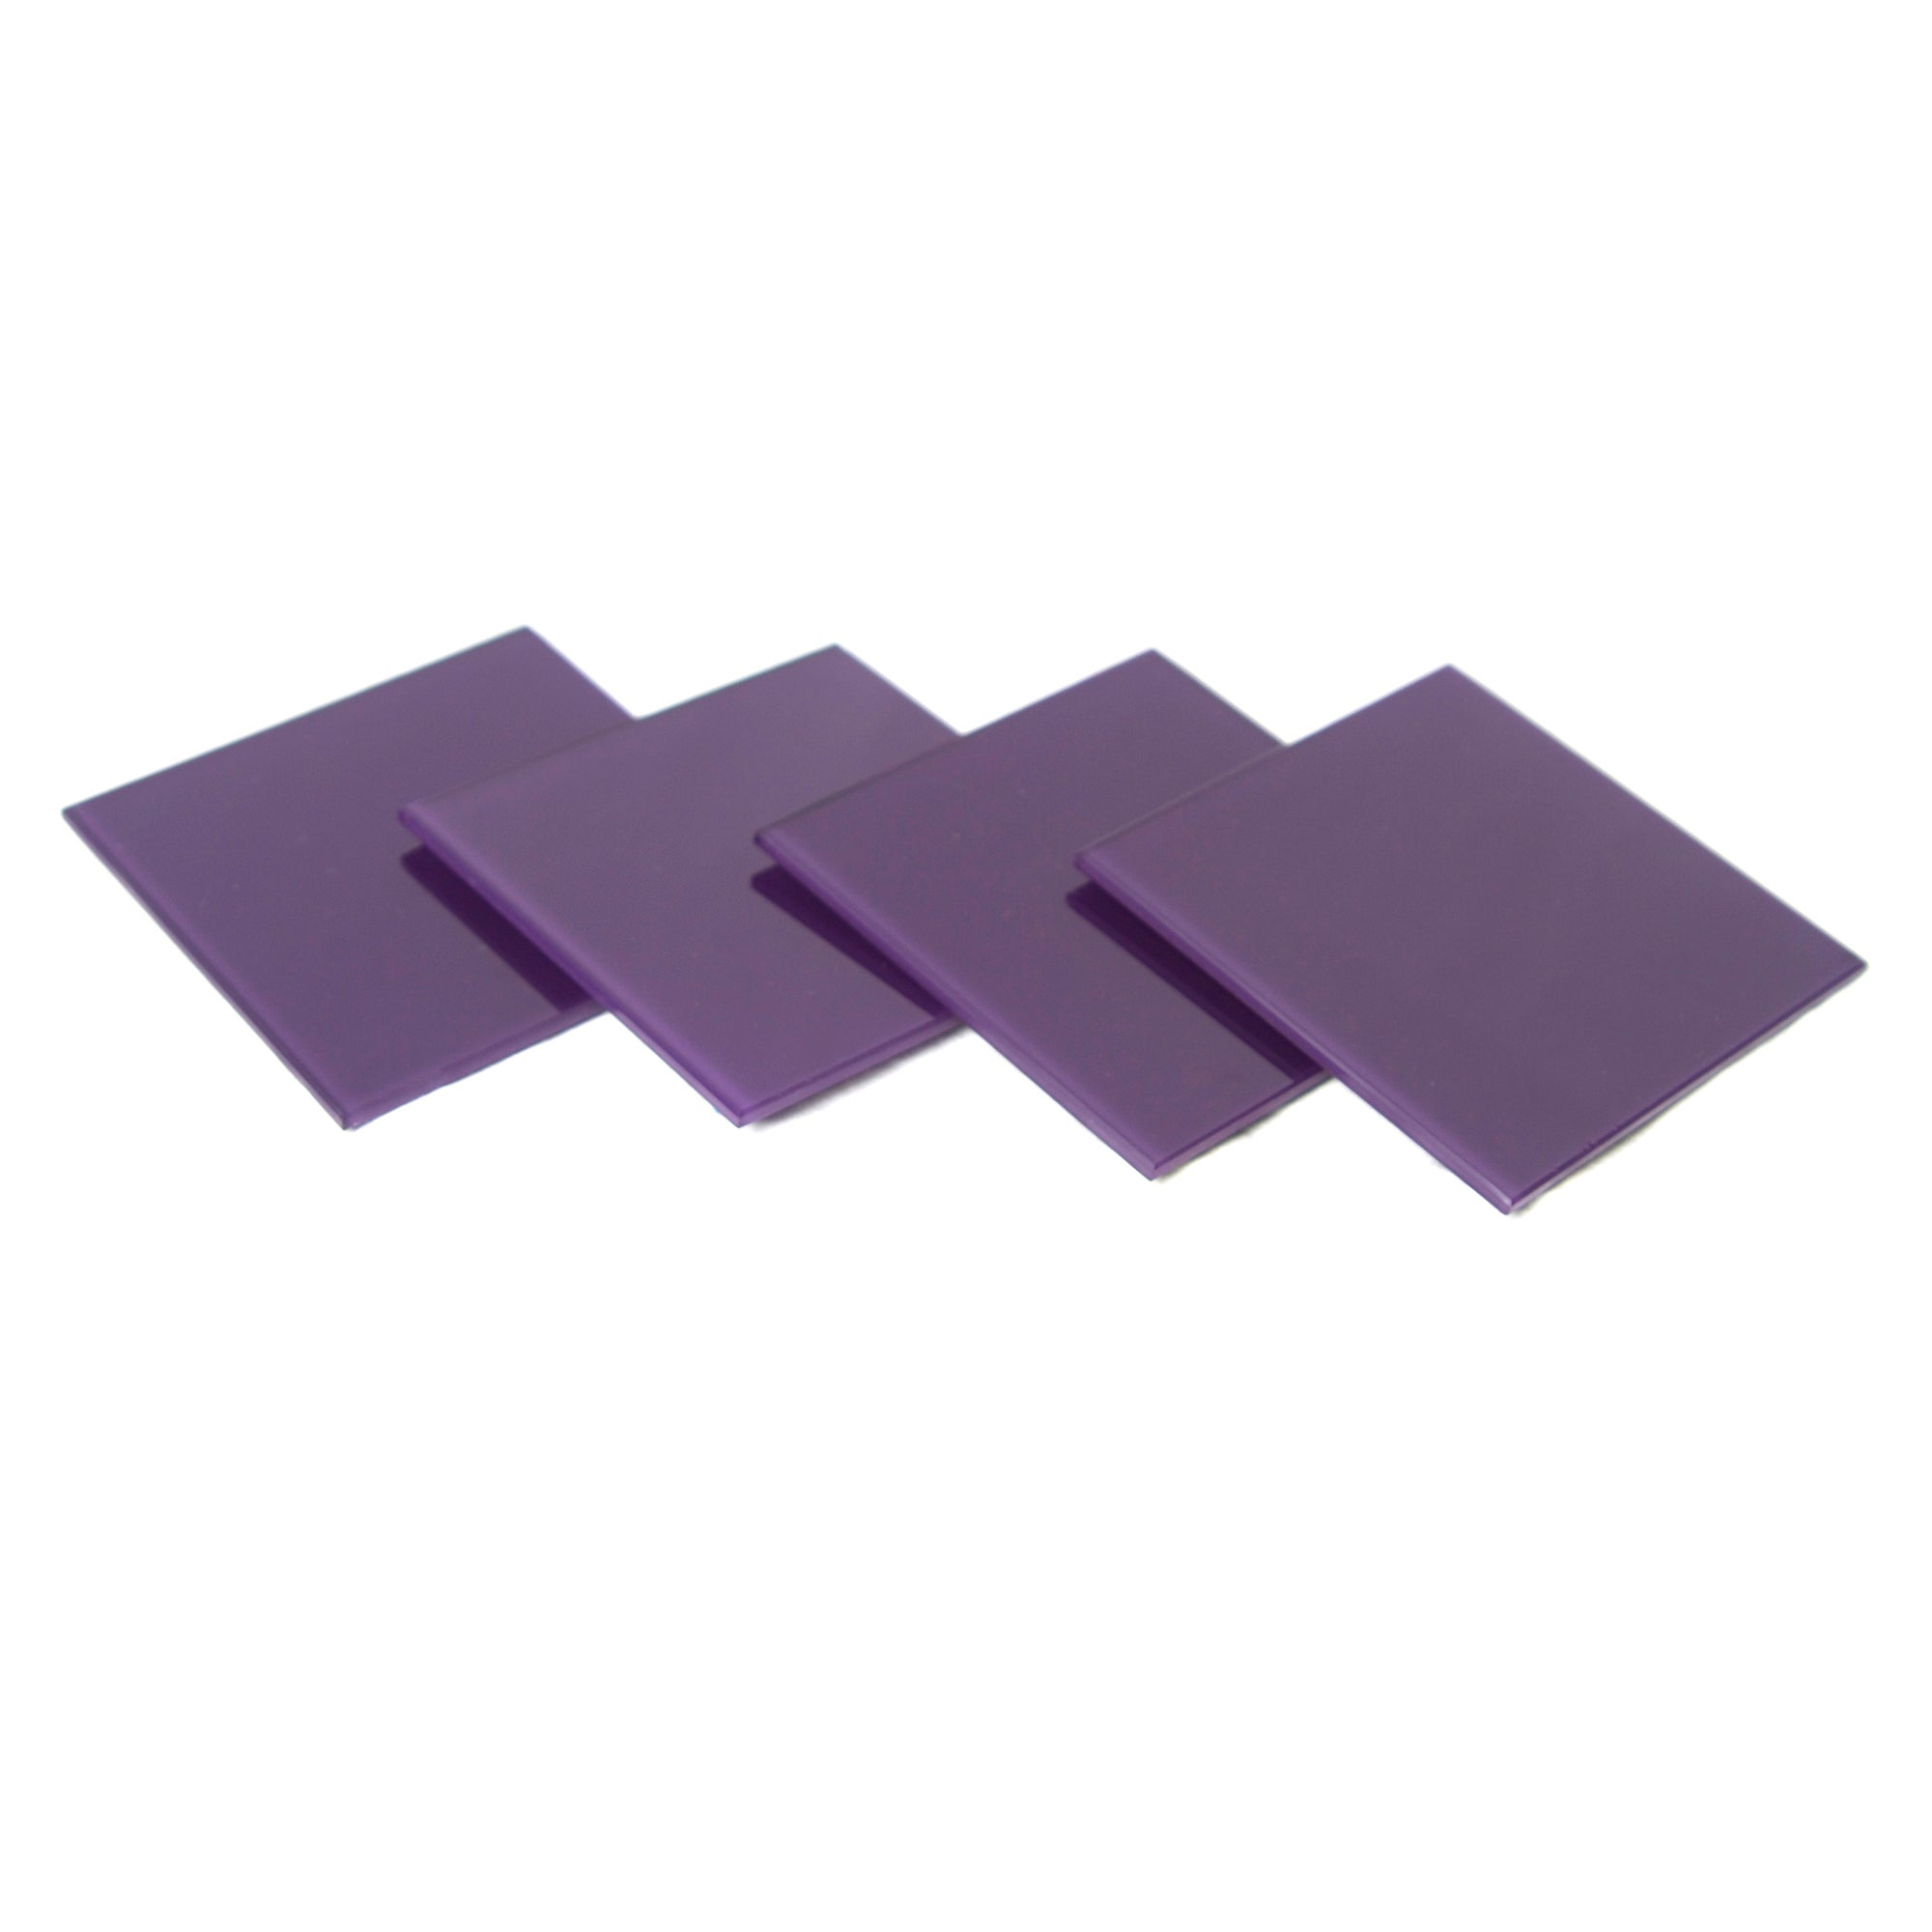 Purple Spectrum Collection Set of 4 Glass Coasters